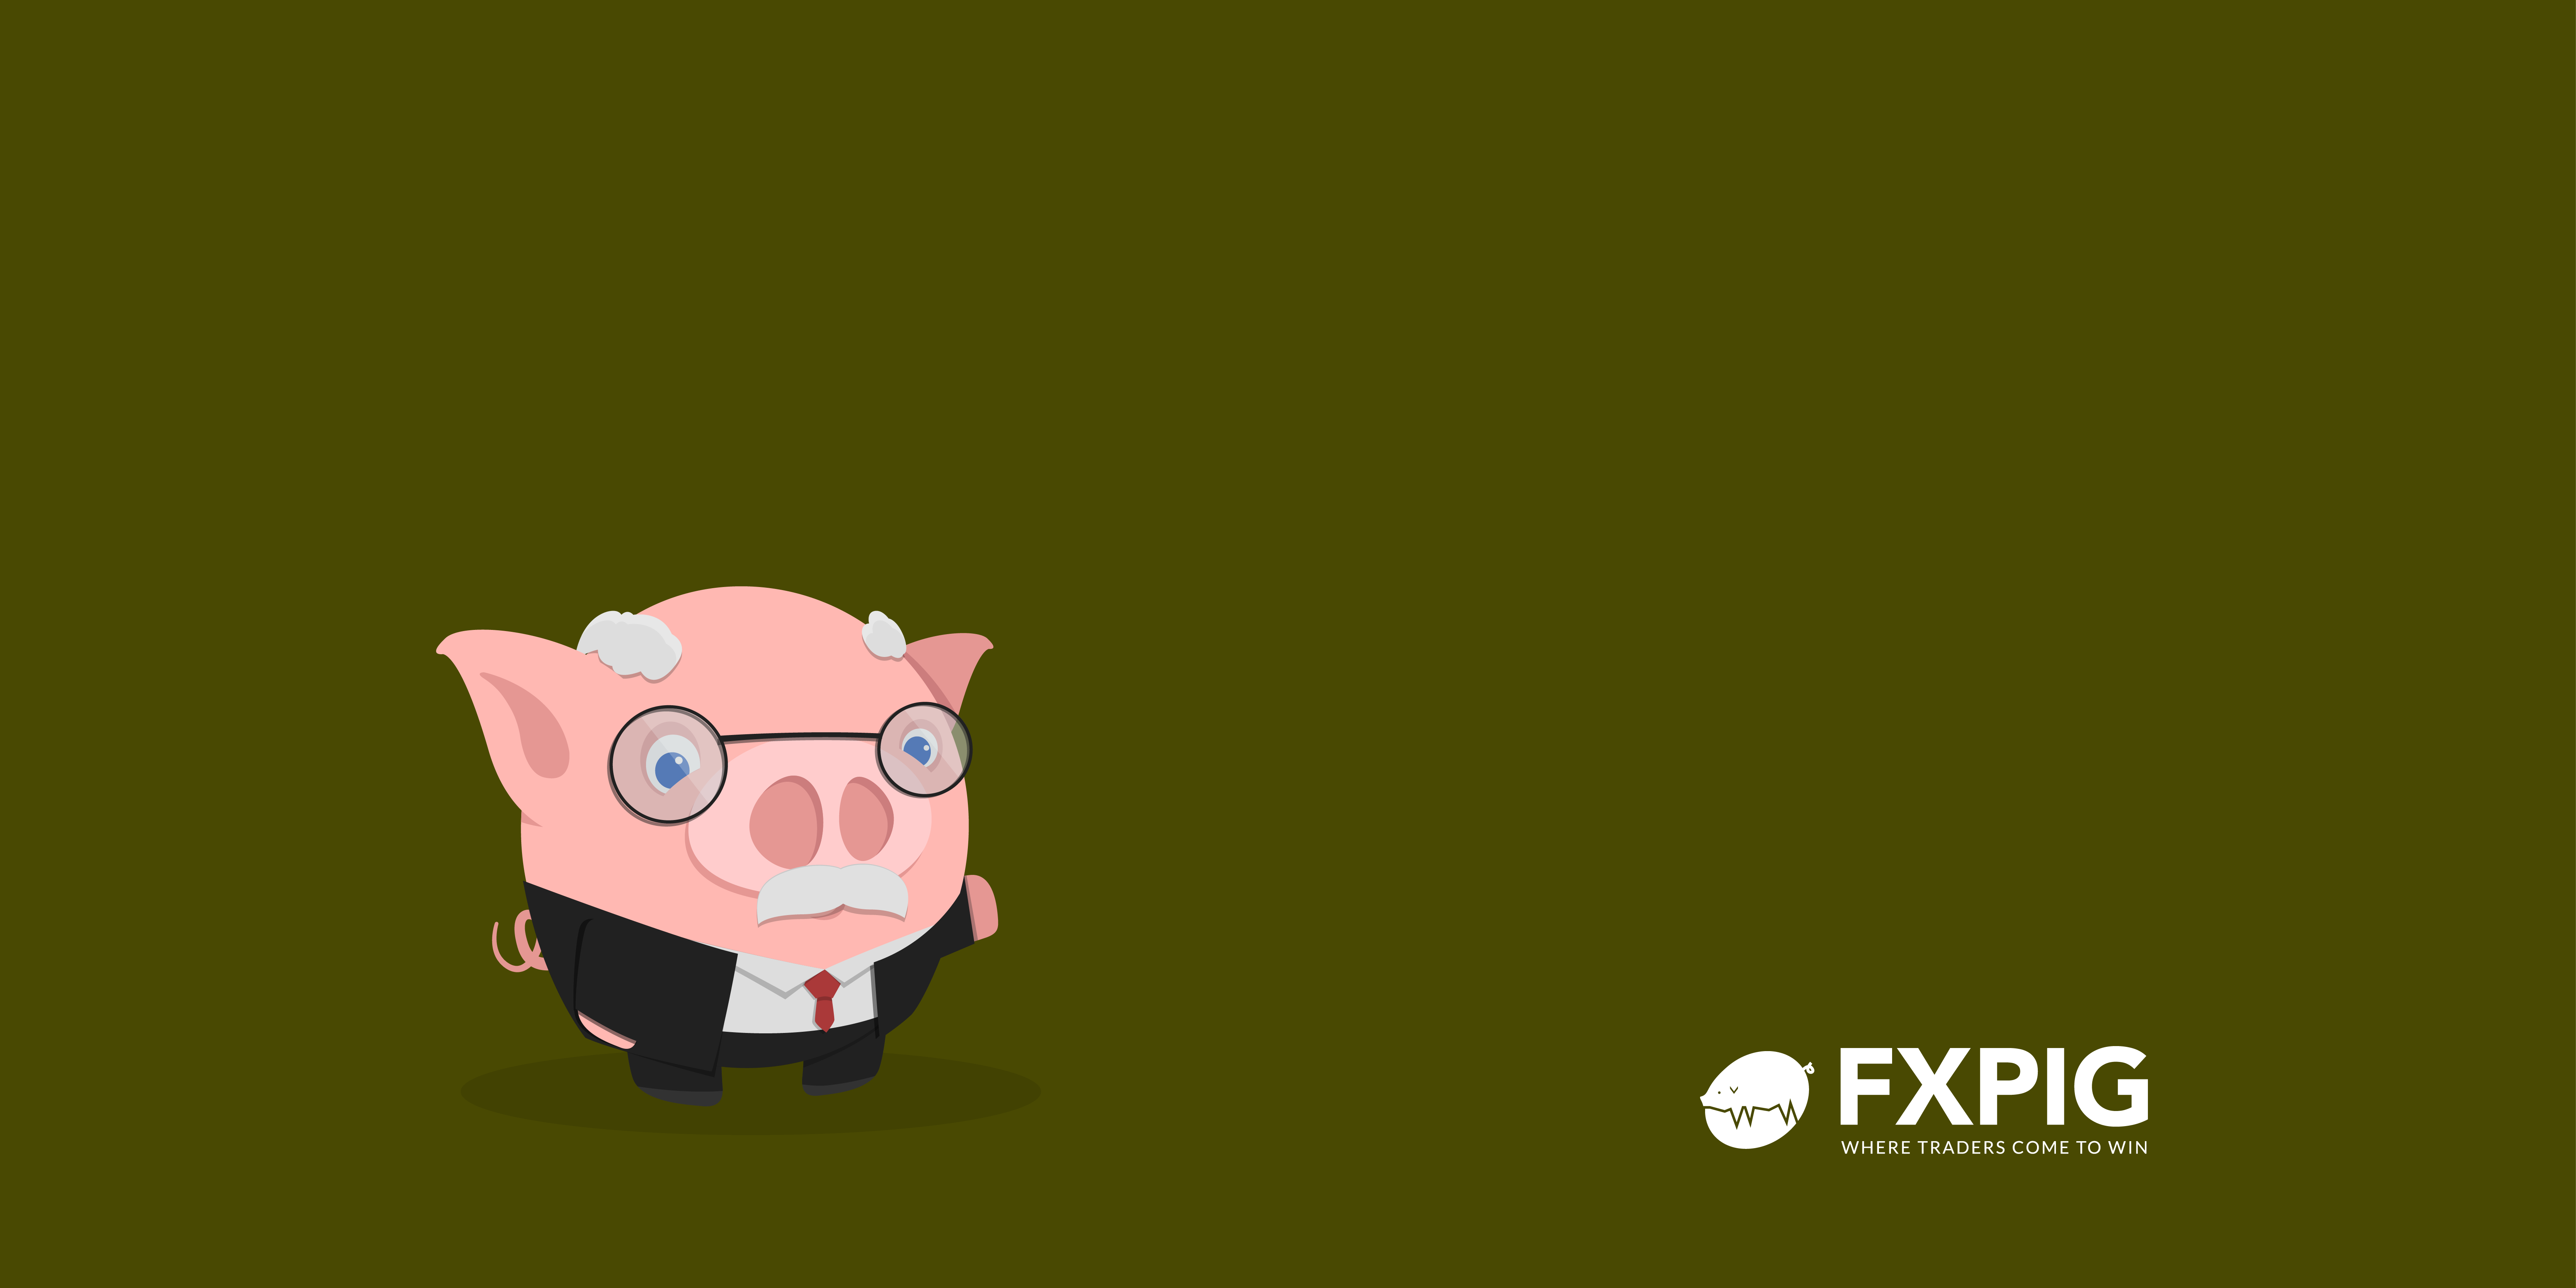 Forex_Trading_Fx_Trader_FXPIG_Forex-Trading-wisdom_Forex-Trading-Quotes_Take_Profits